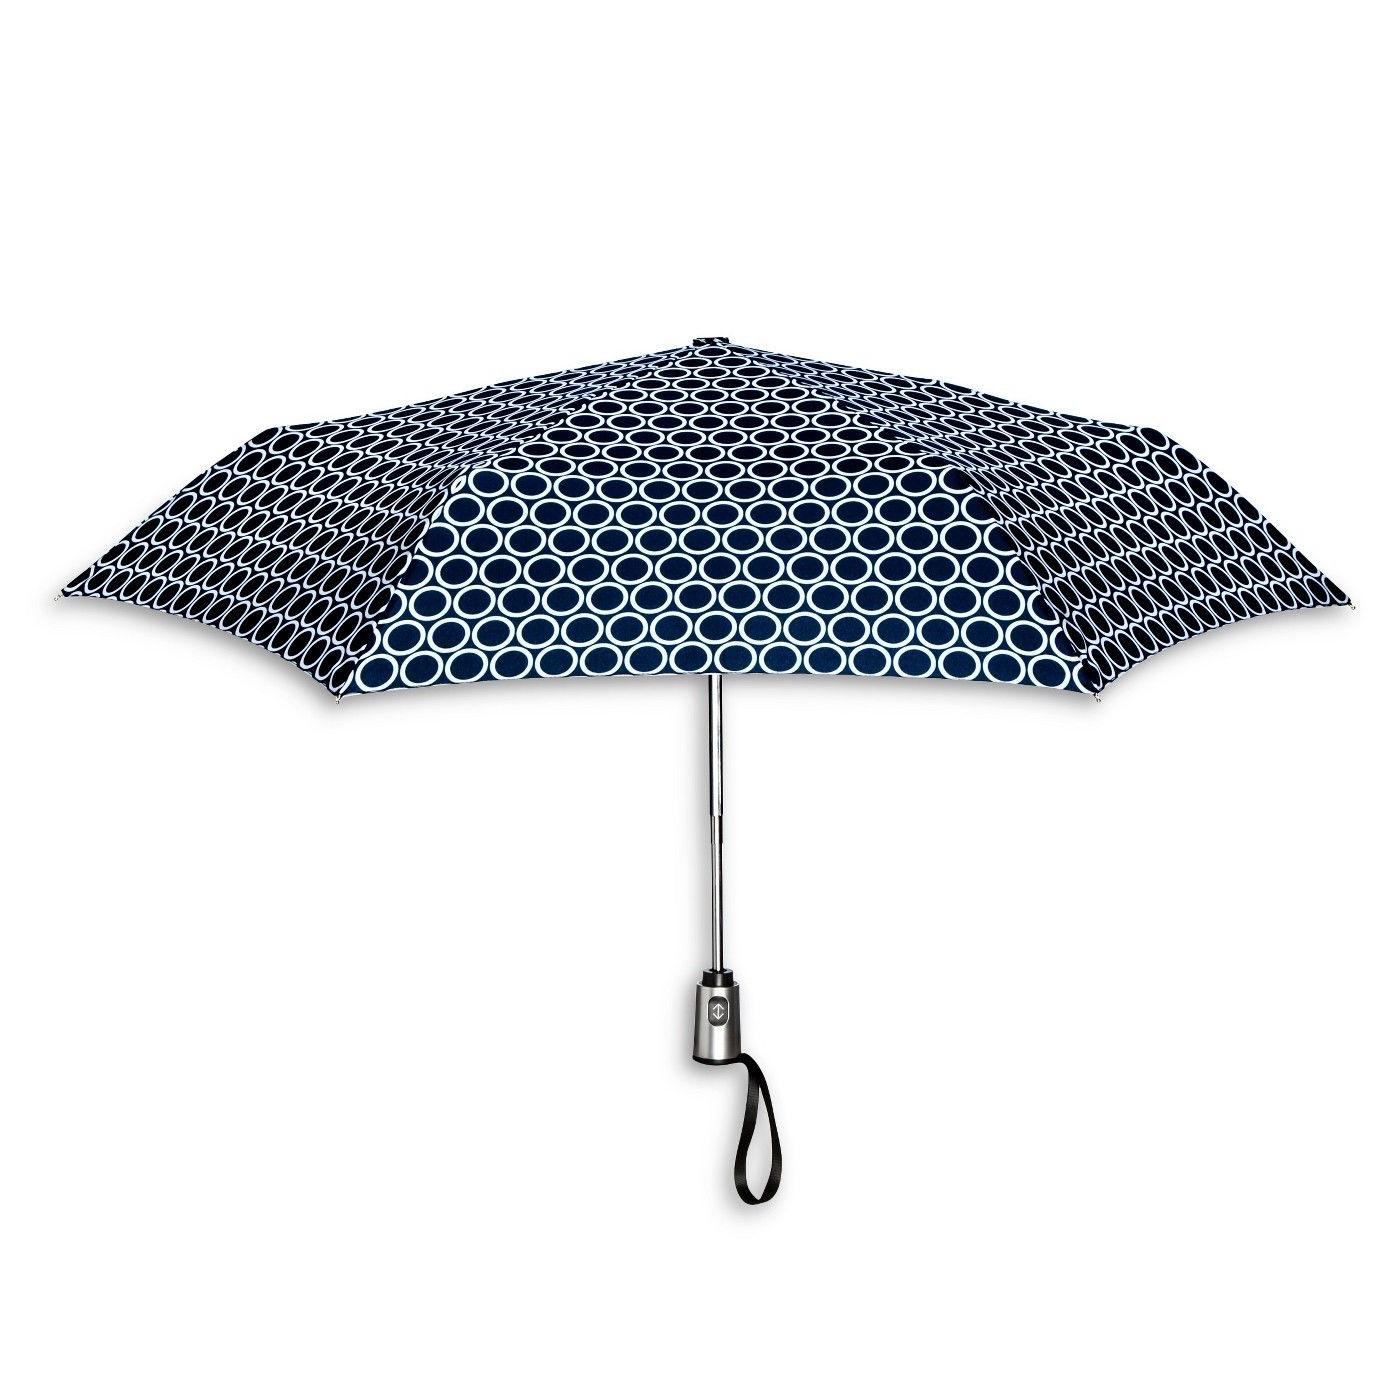 ShedRain Auto Open/Close Compact Umbrella - Navy Polka Dot